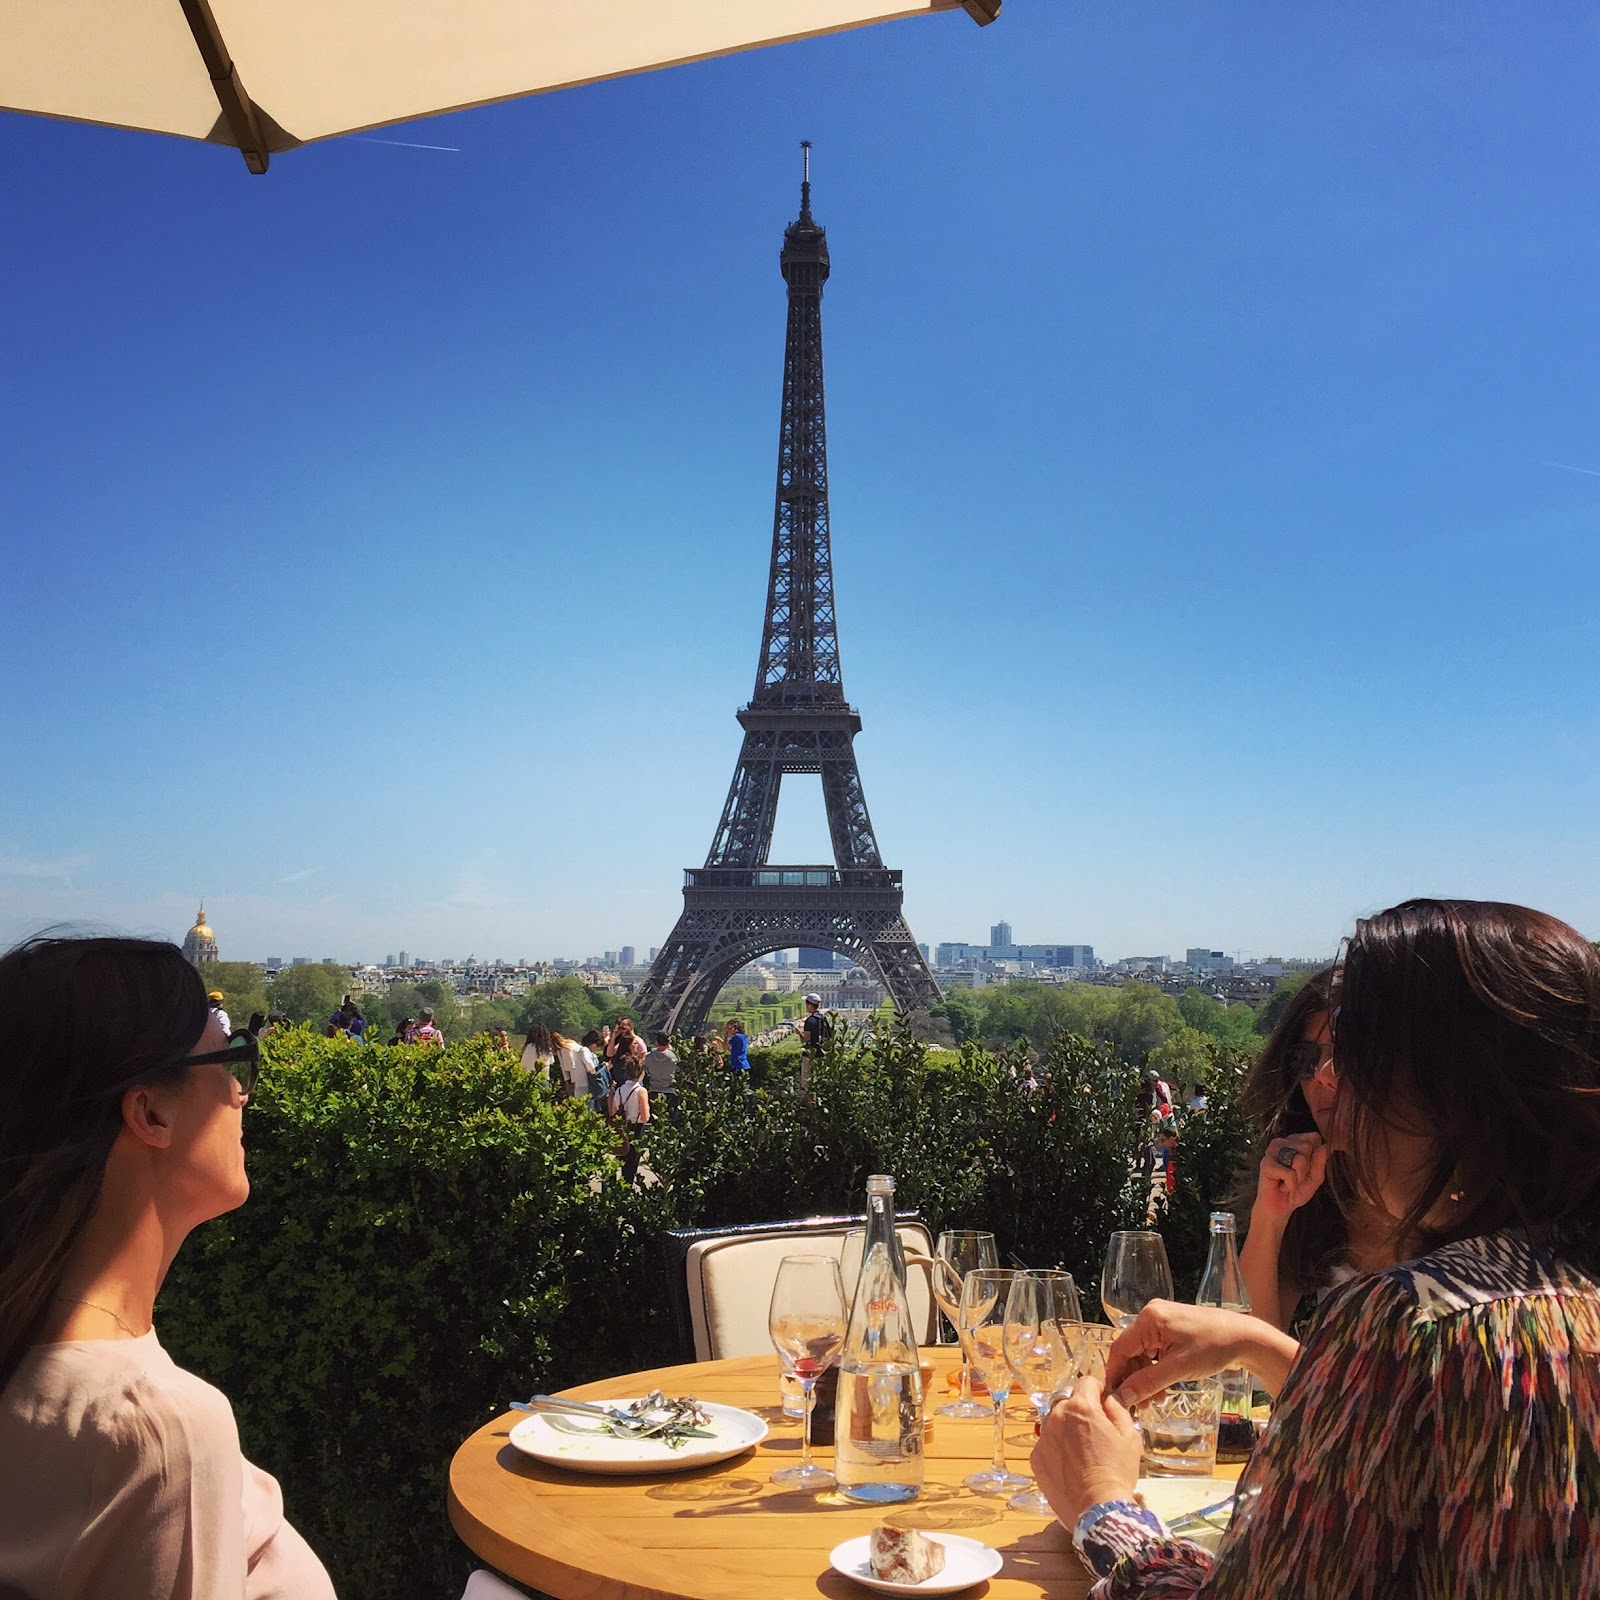 Three young girls enjoying food and drinks served on a wooden table in an outdoor restaurant. Garden terrace overlooking the eiffel tower on a clear, sunny day.